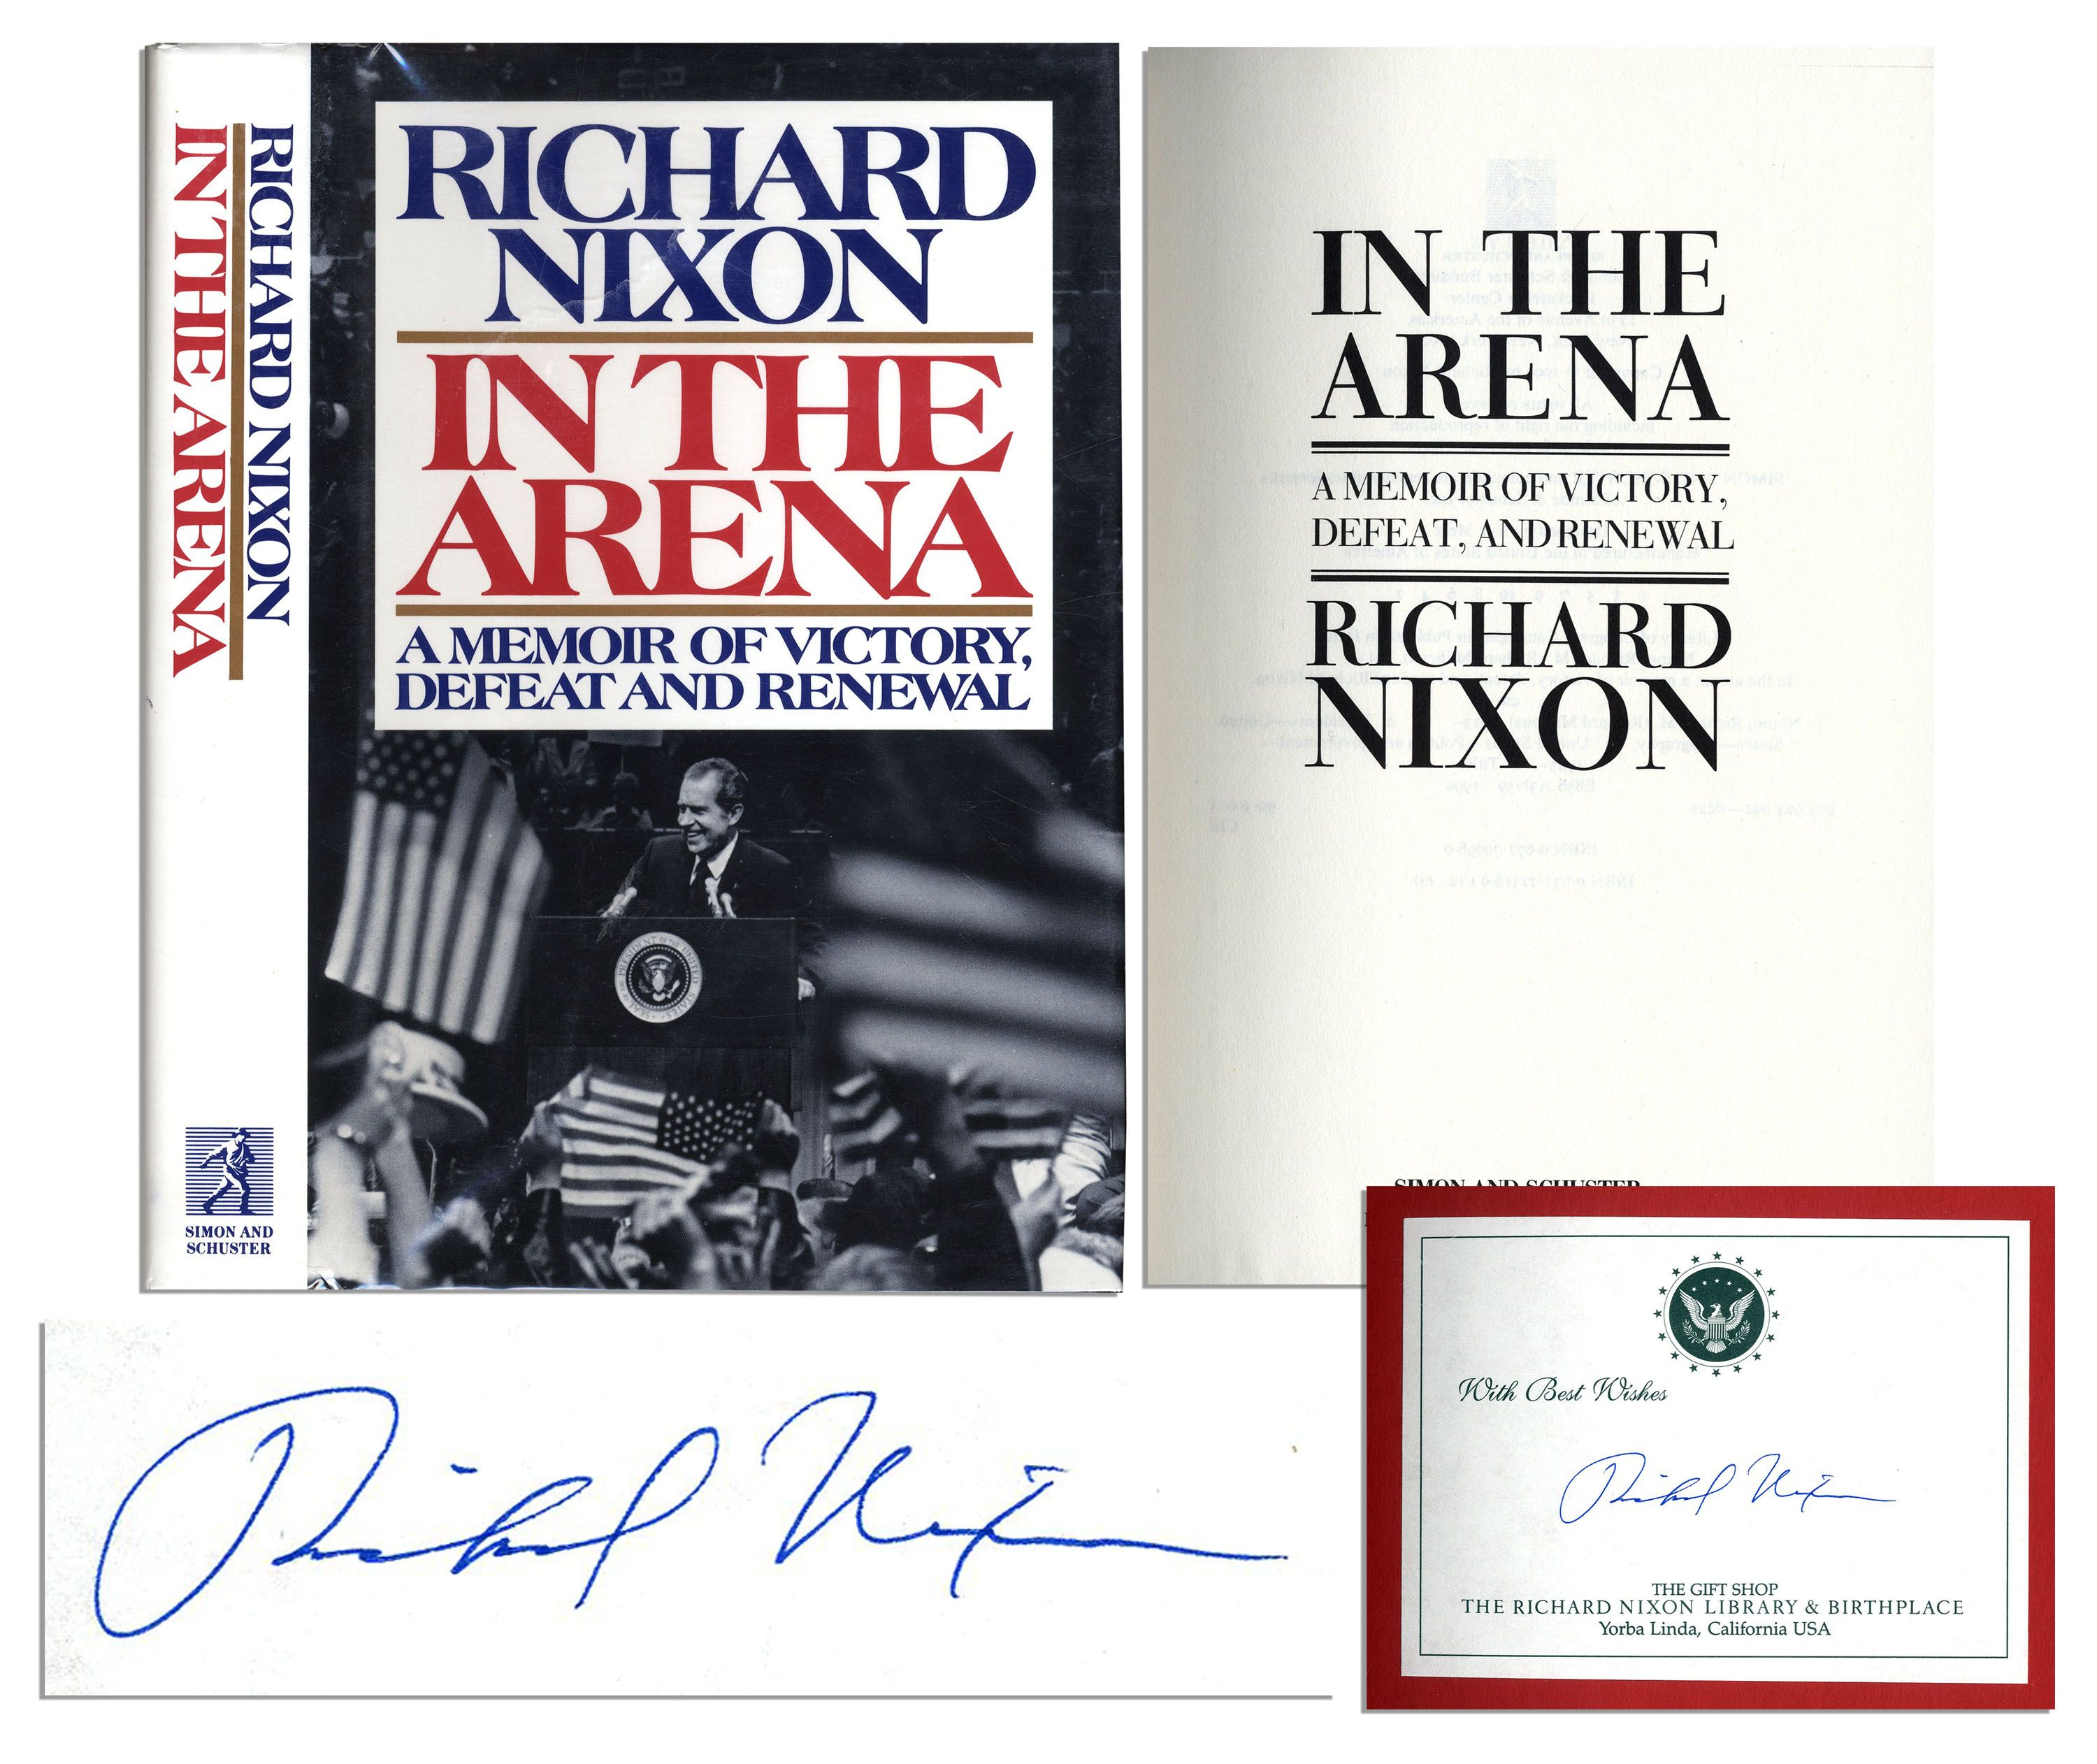 lot detail richard nixon signs a first edition of his